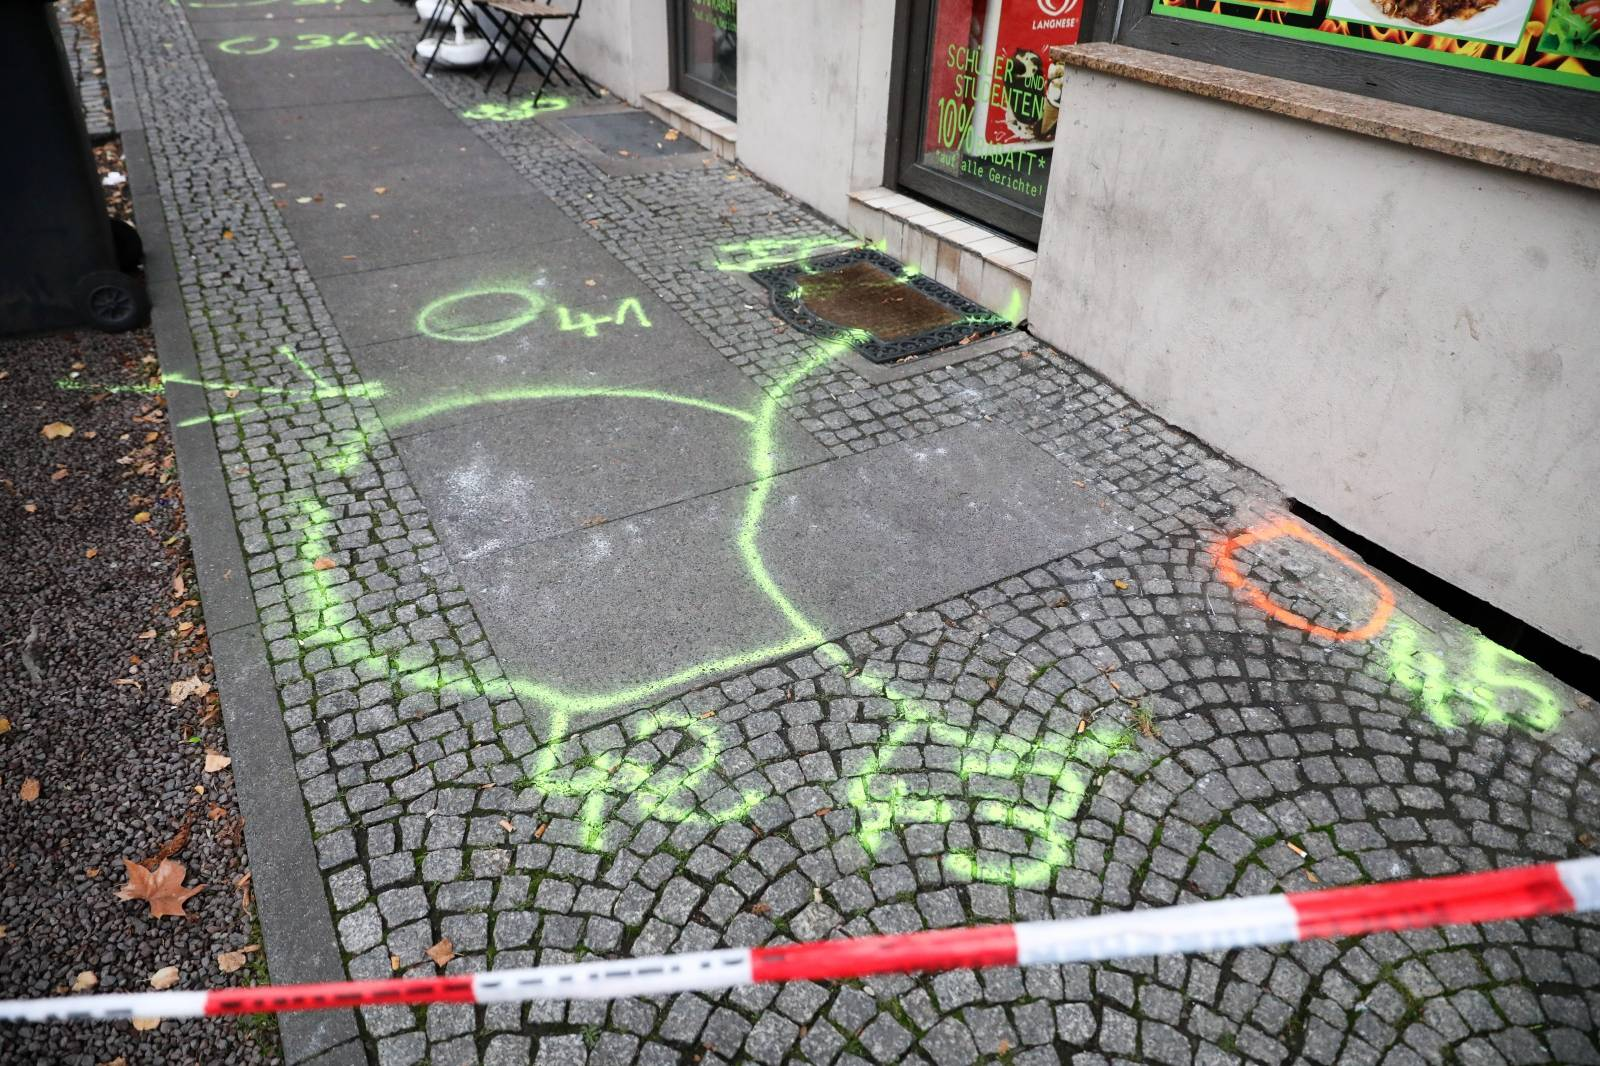 After attack in Halle/Saale